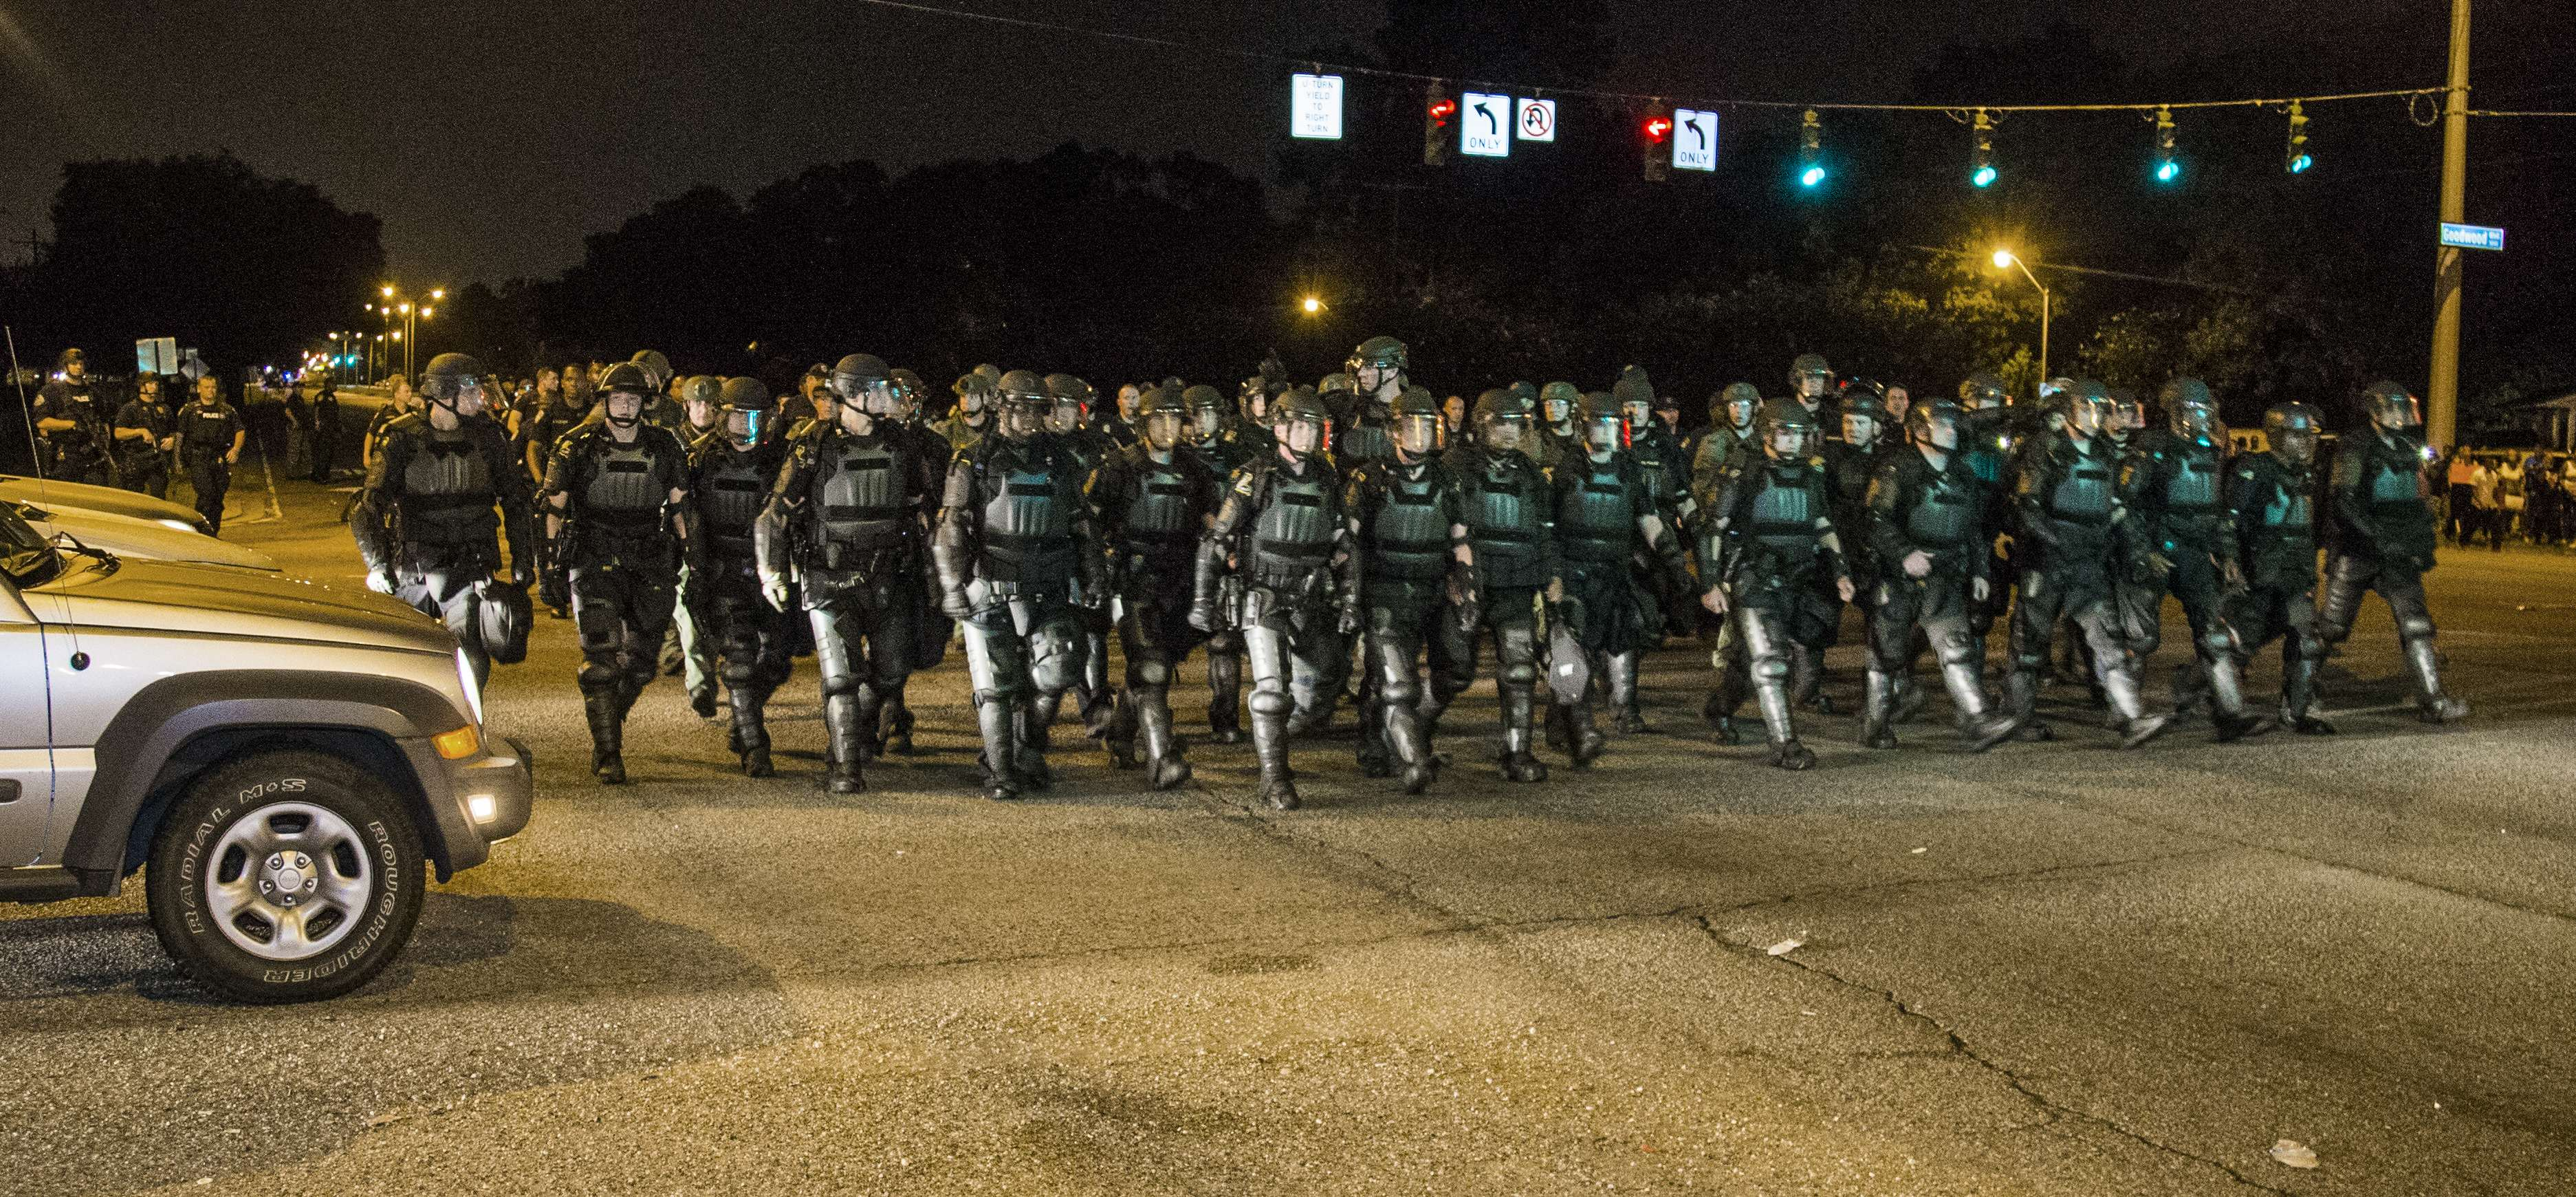 GettyImages 545751190 The Woman In Iconic Baton Rogue Protest Photo Has Spoken Out